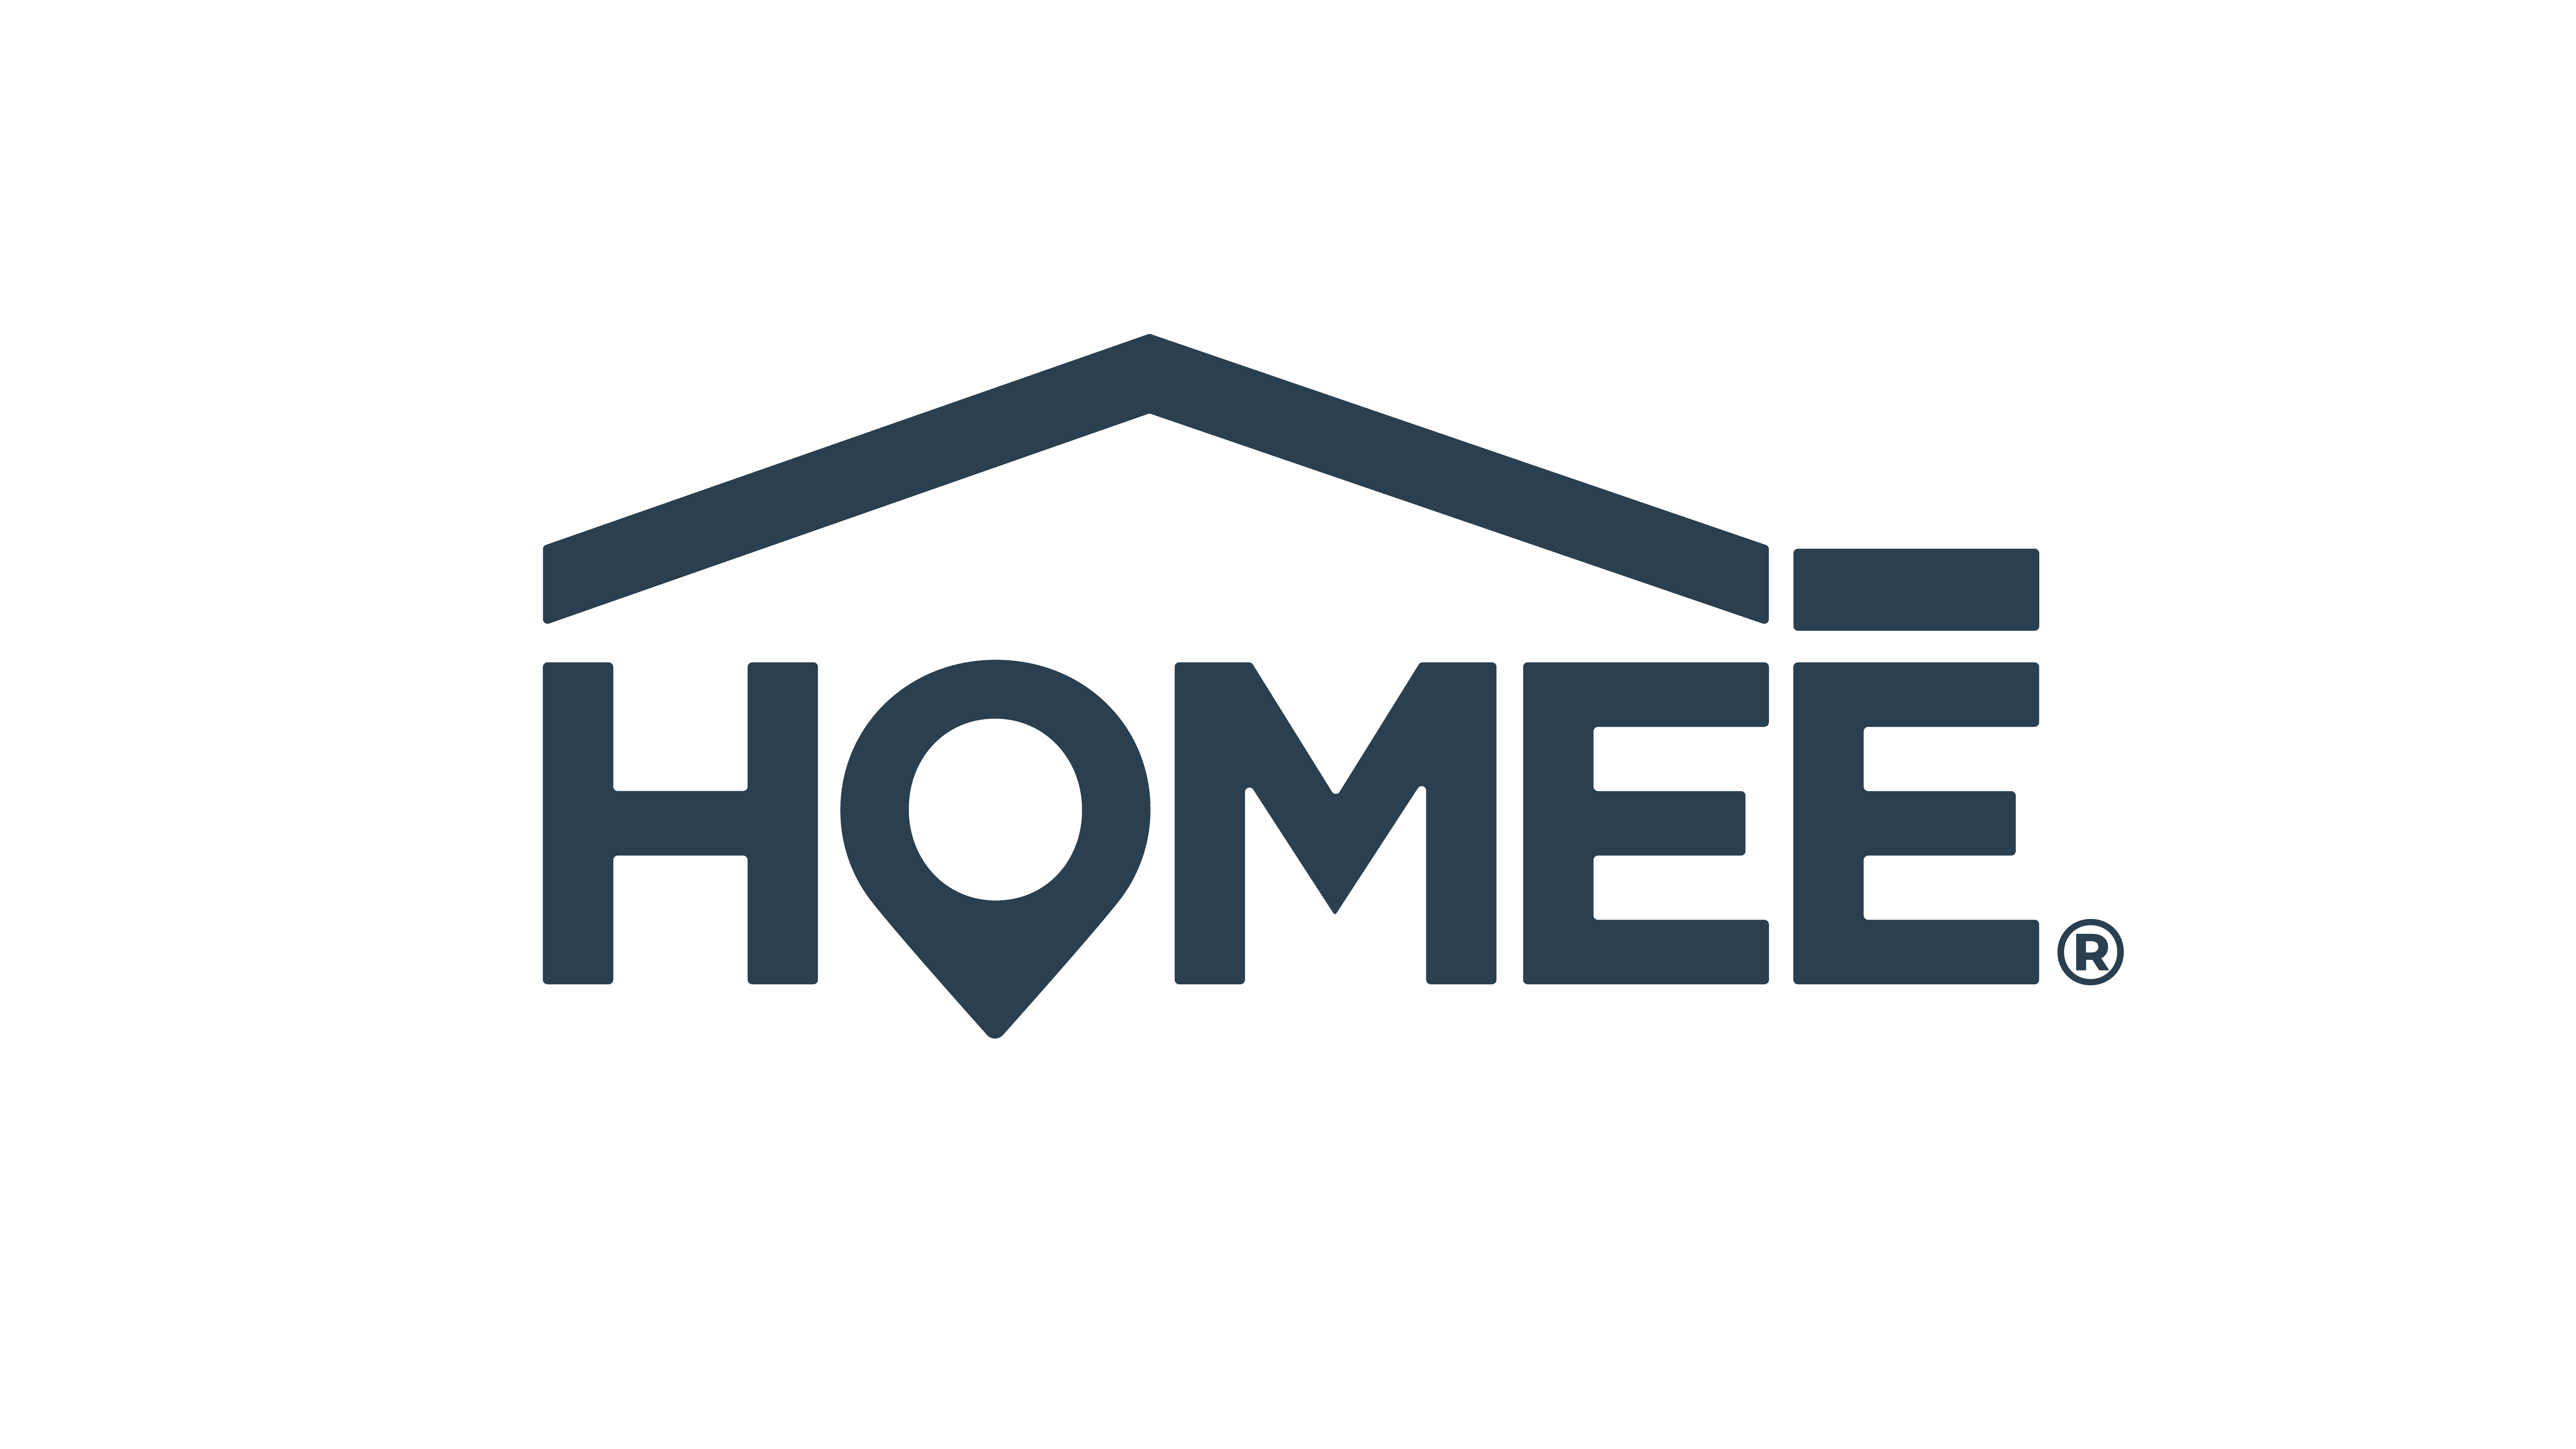 HOMEE to Participate in Renovation of Veteran's Home